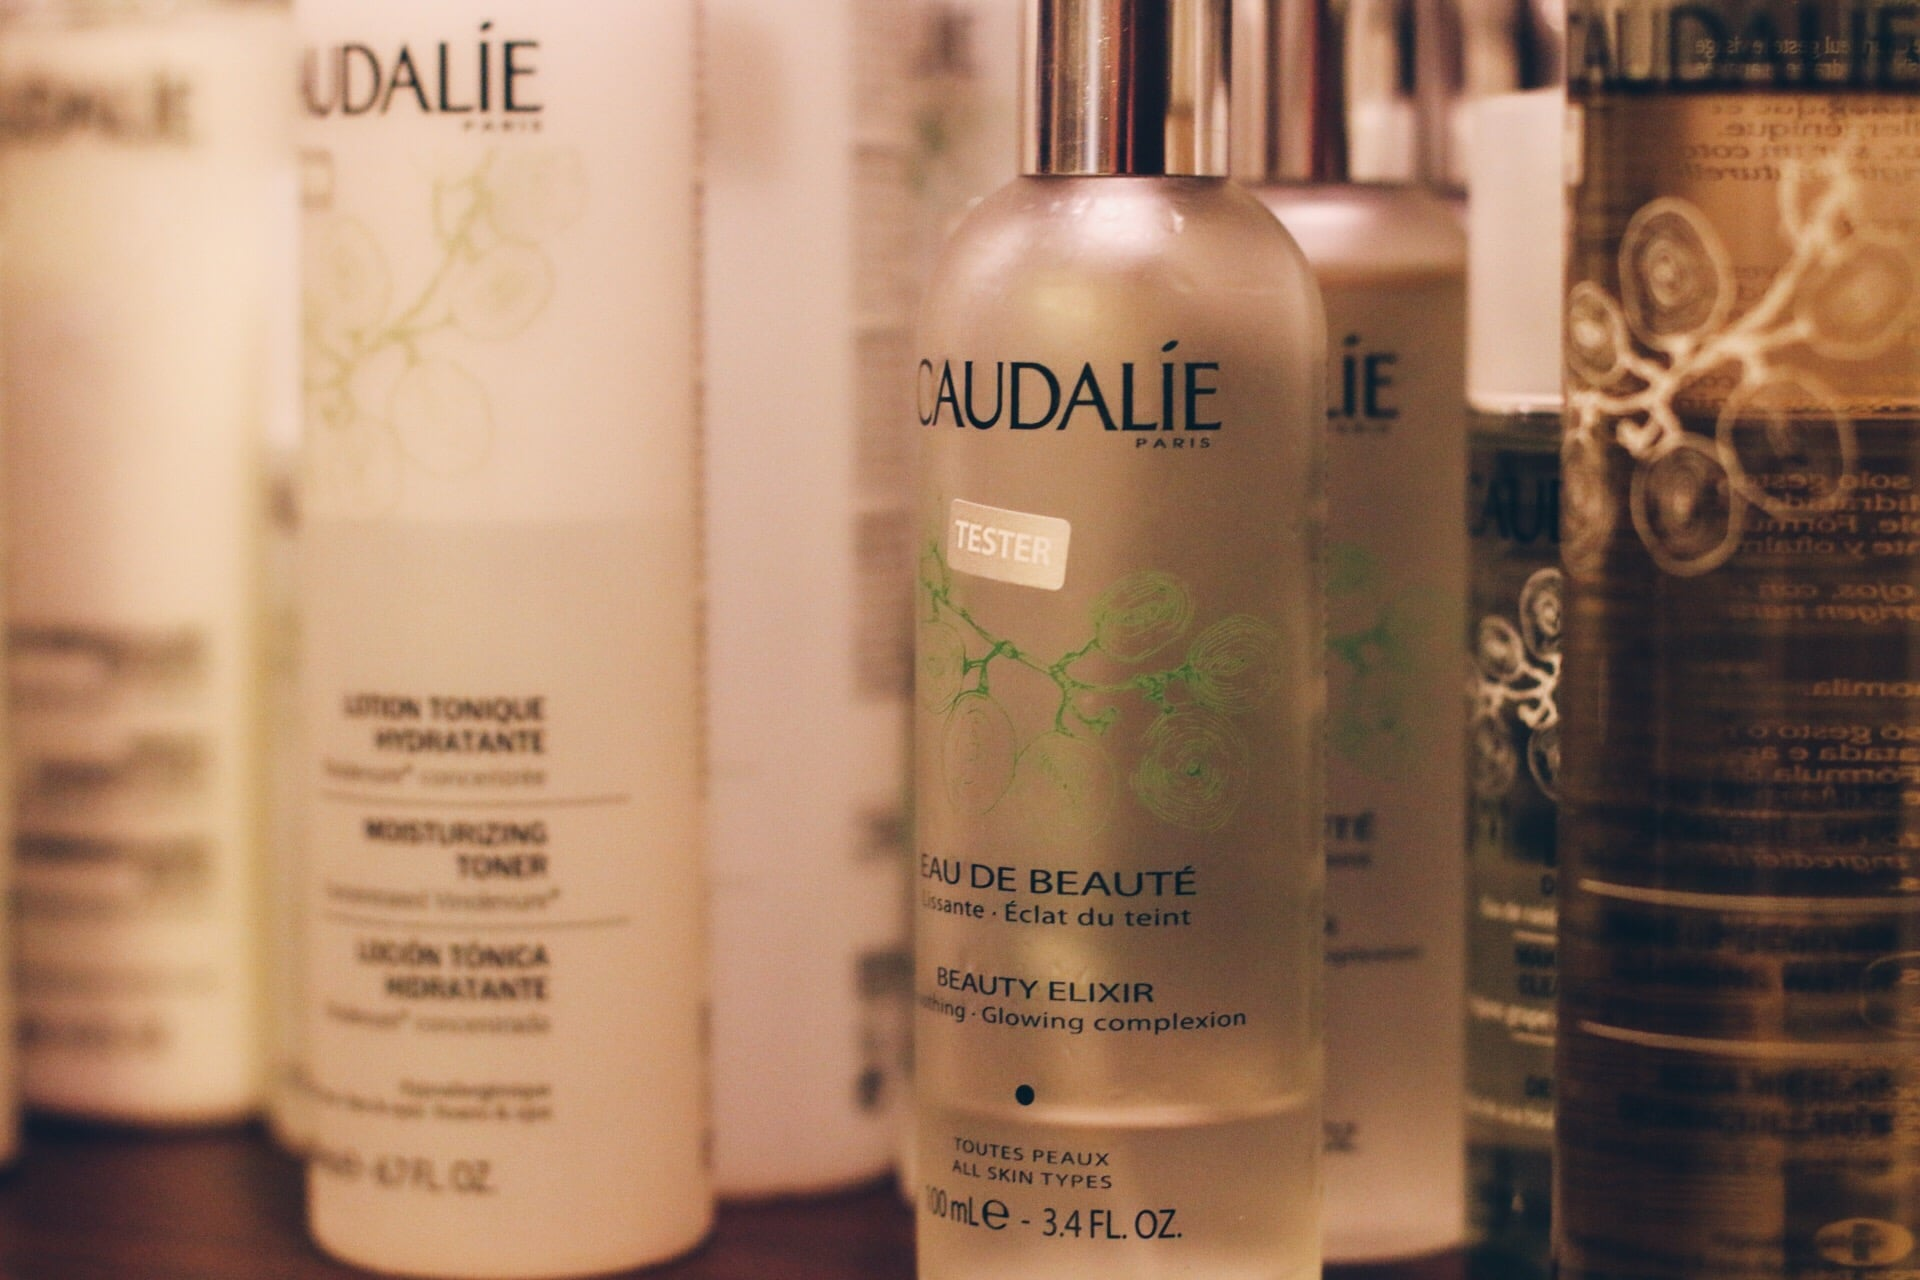 CAUDALIE'S MAGICAL BEAUTY ELIXIR.I WANT THIS MISTED ON MY FACE 24/7. MADE OF GRAPE, ORANGE BLOSSOM, ROSE, ORGANIC BALM MINT, ROSEMARY, MYRRH AND BENZOIN.